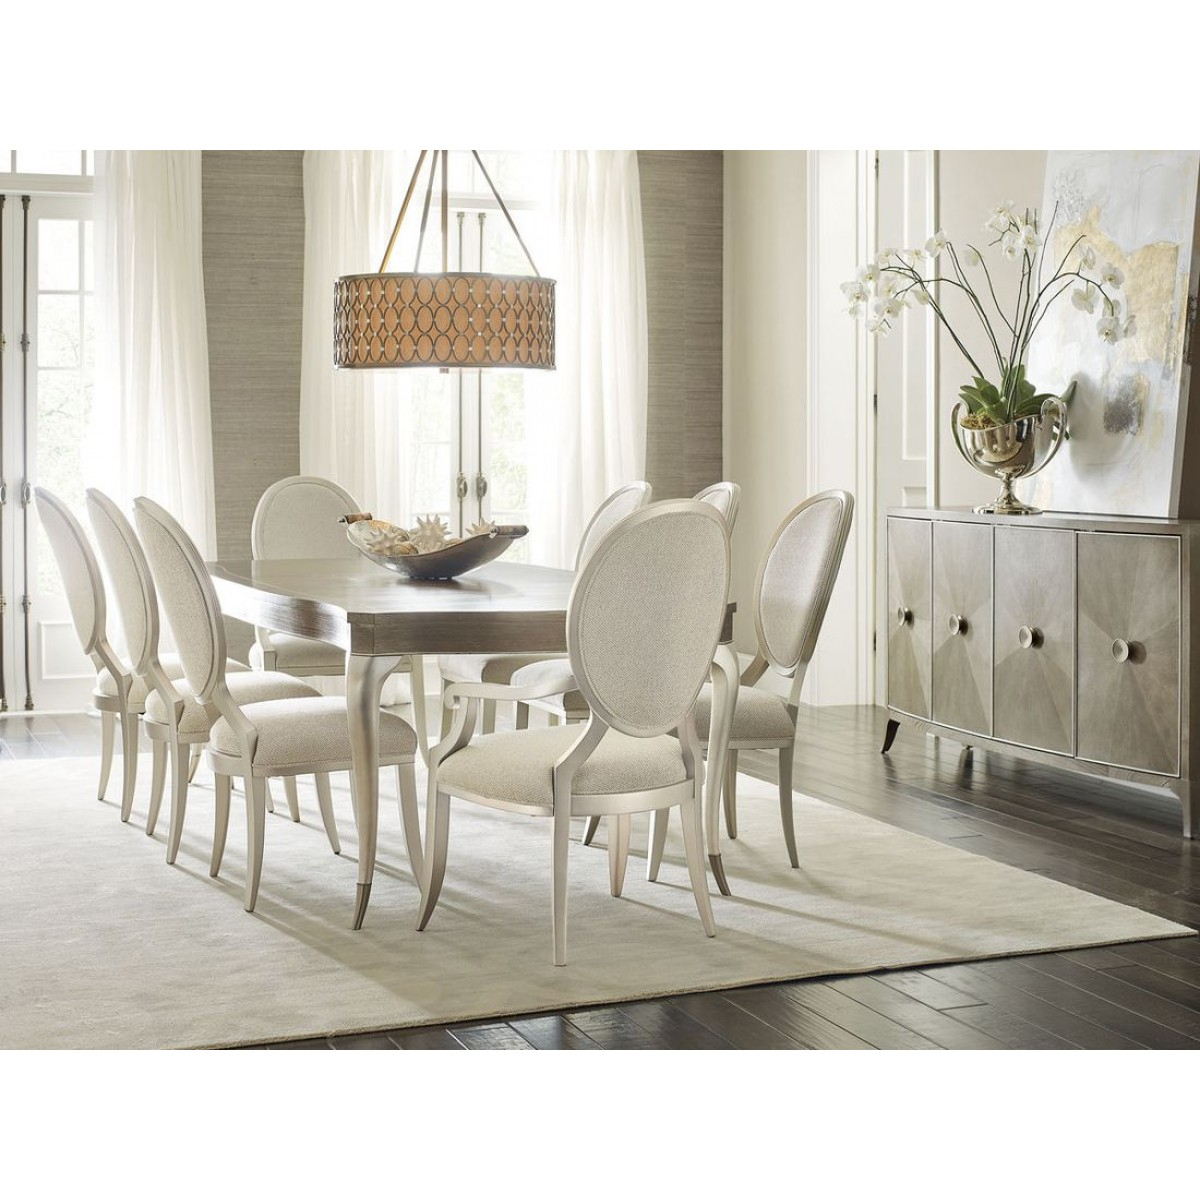 Featured Image of Avondale Dining Tables